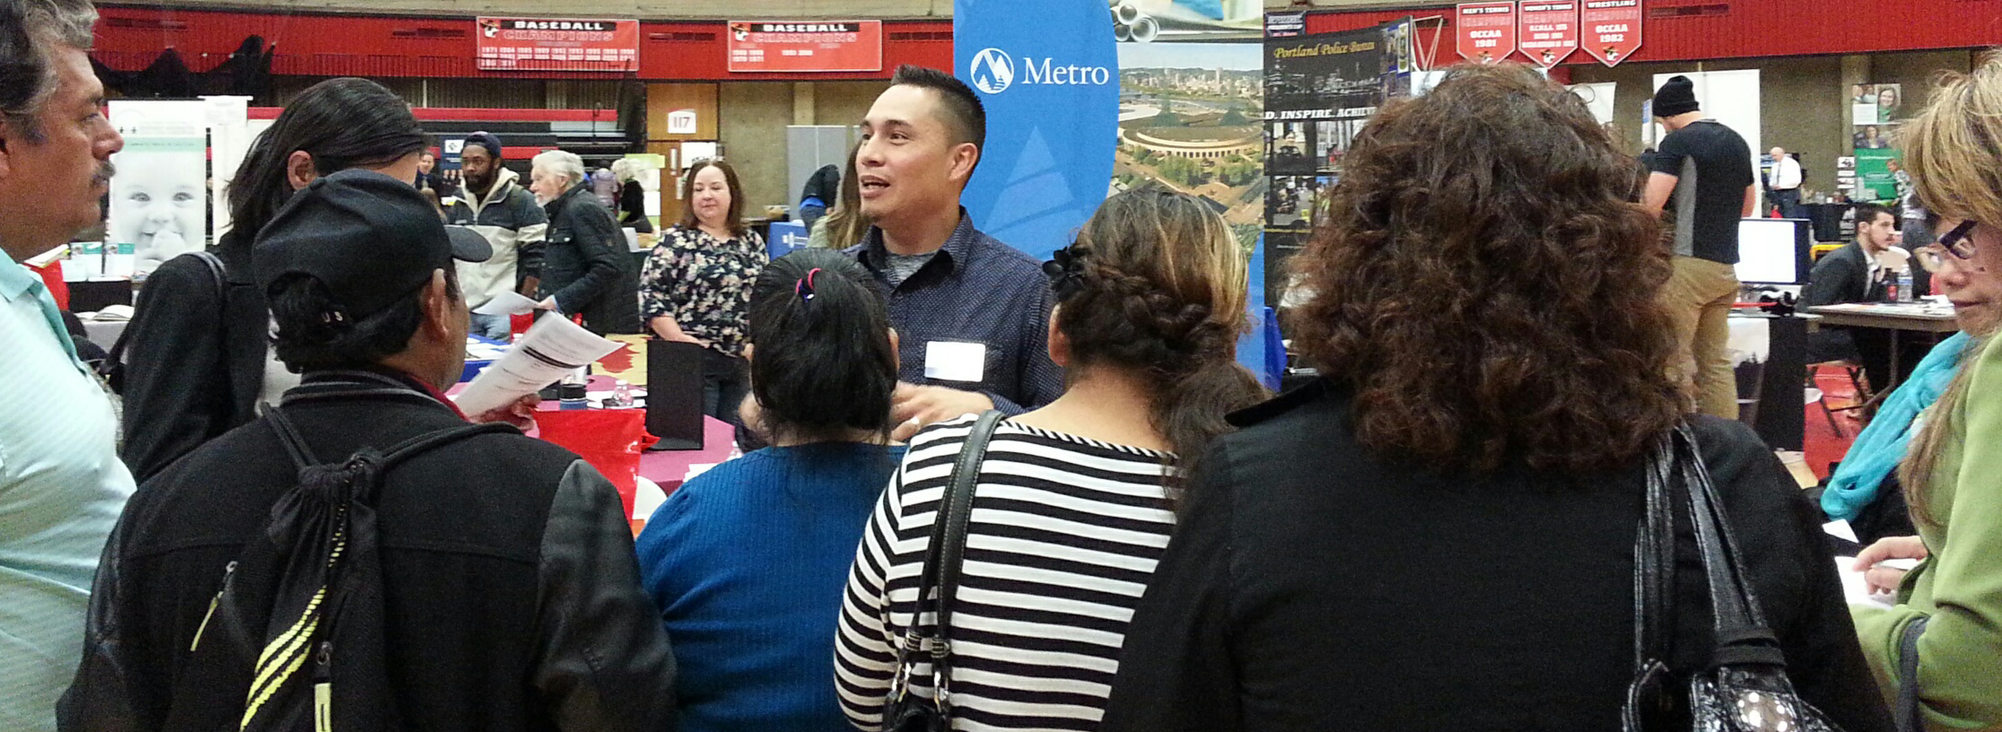 Job fair at Mt. Hood Community College